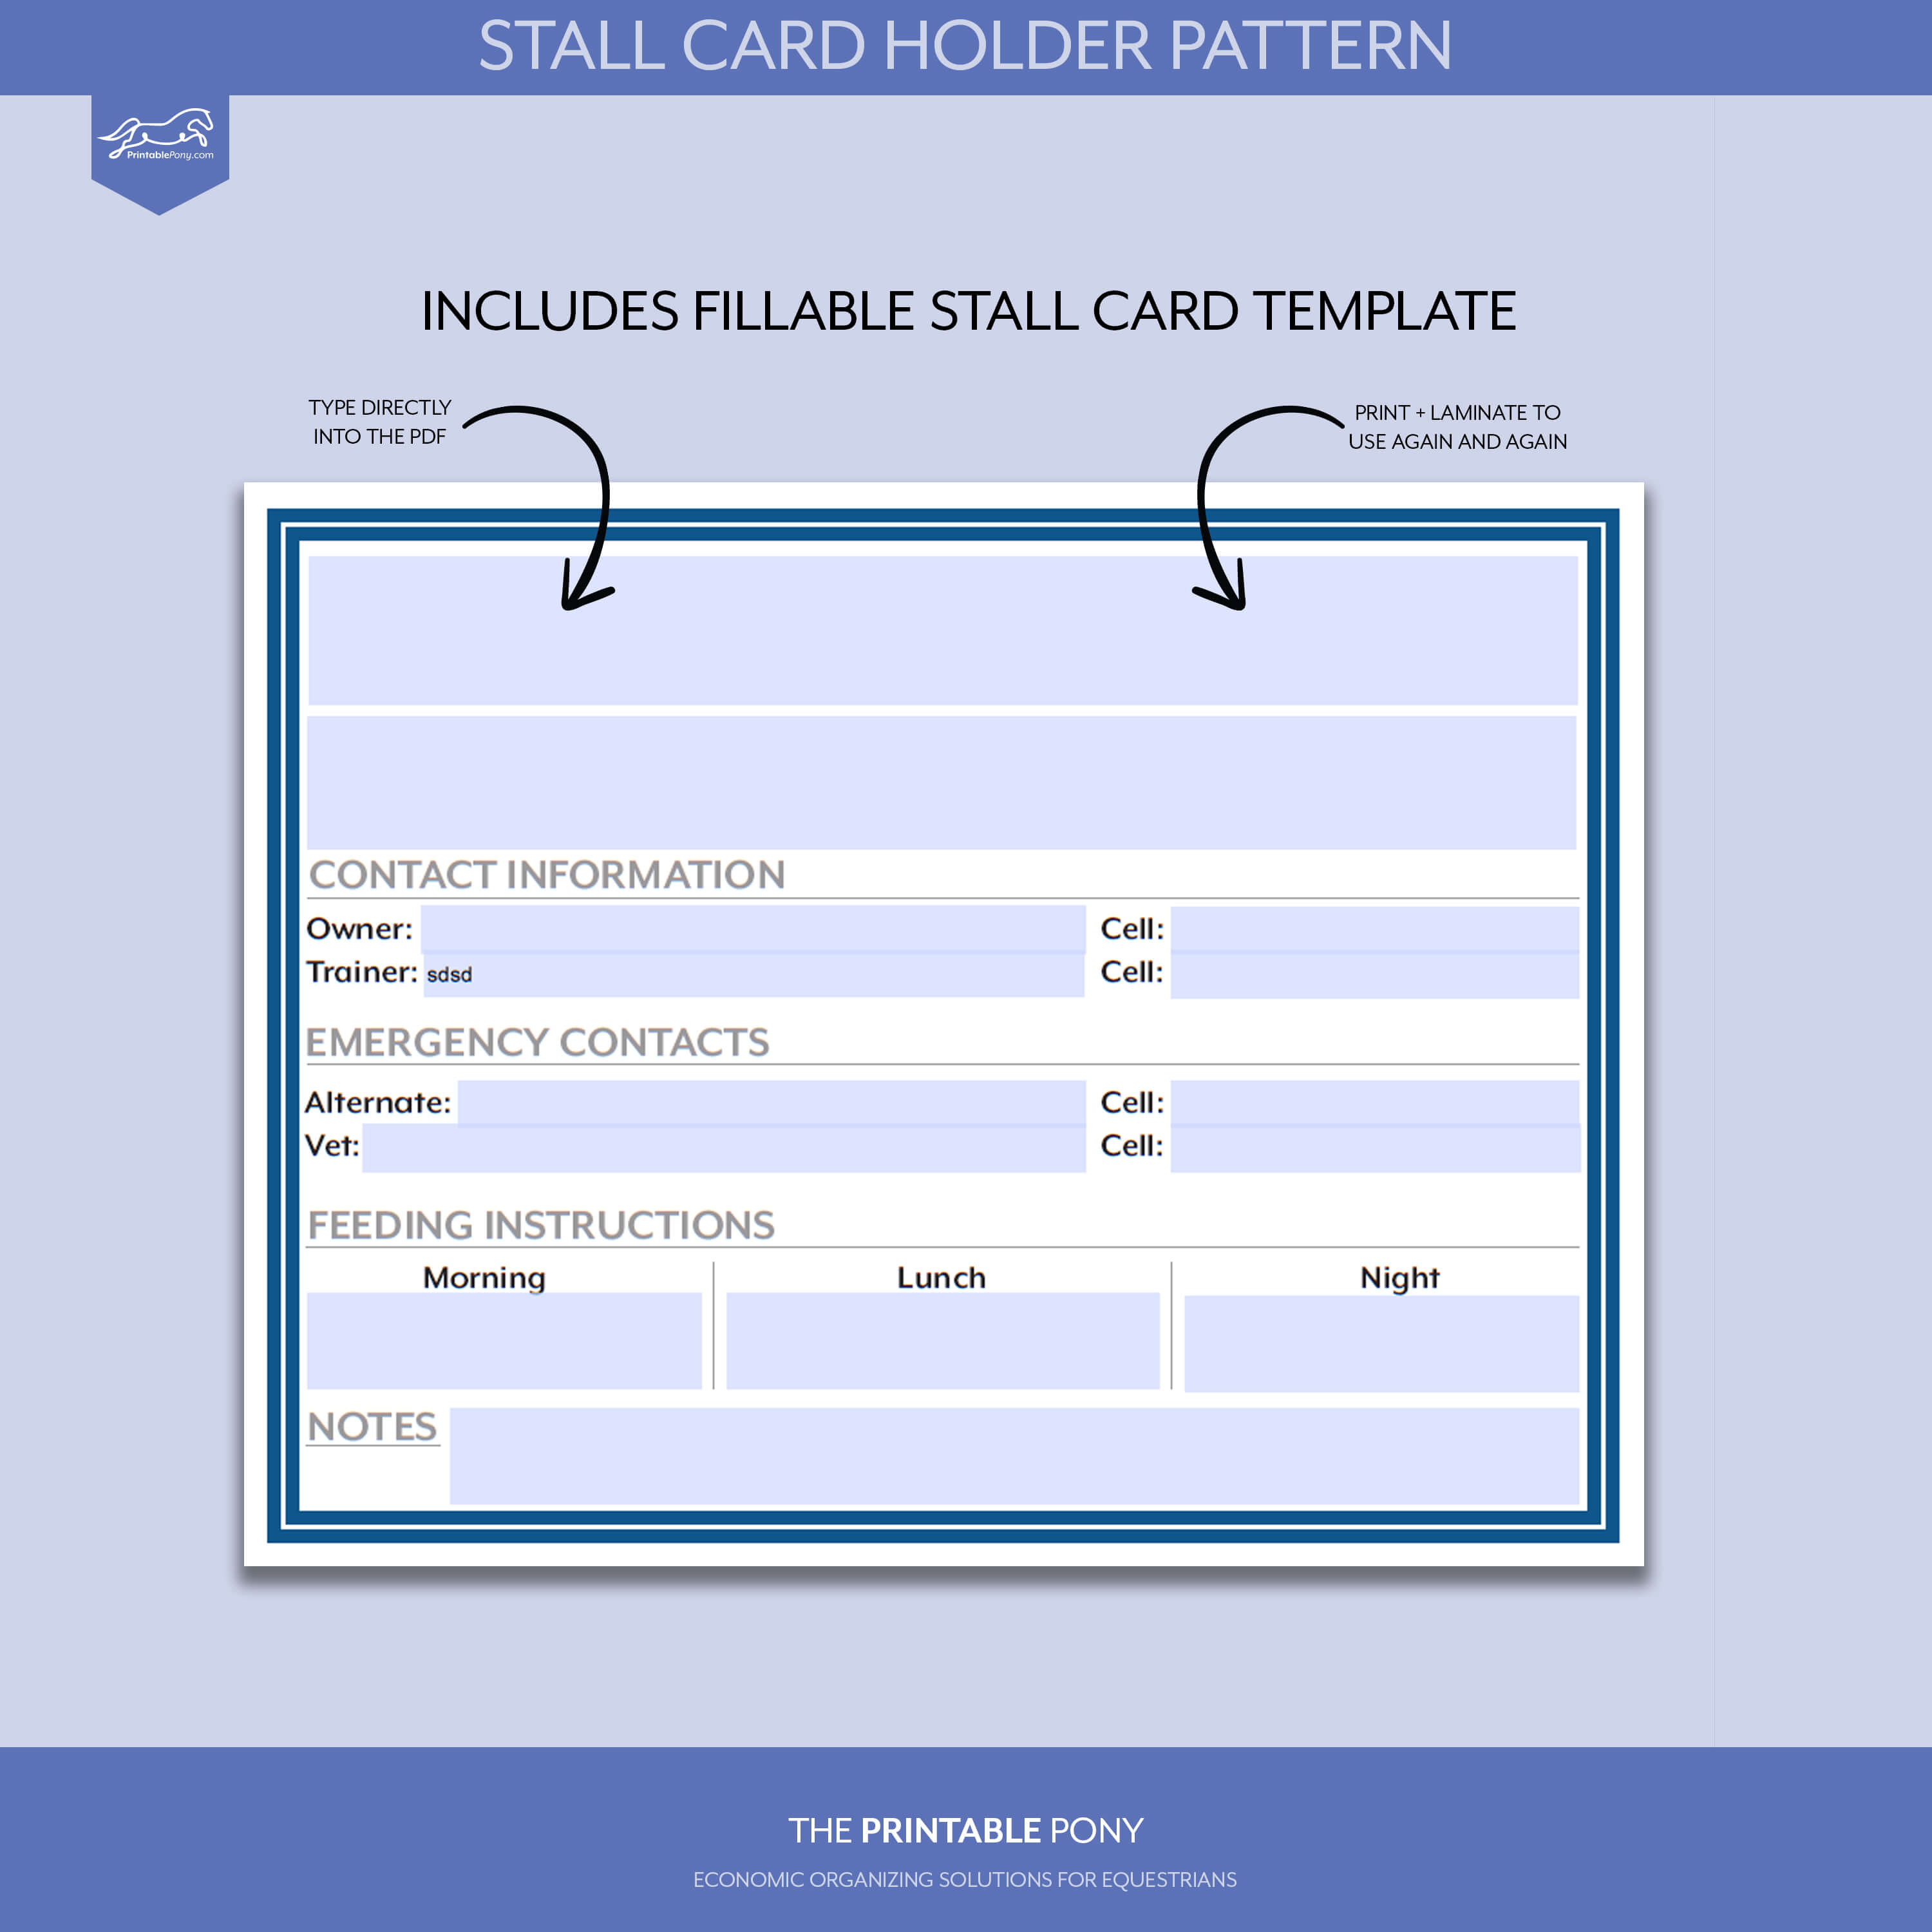 Stall Card Holder Pattern + Printable Stall Card with regard to Horse Stall Card Template